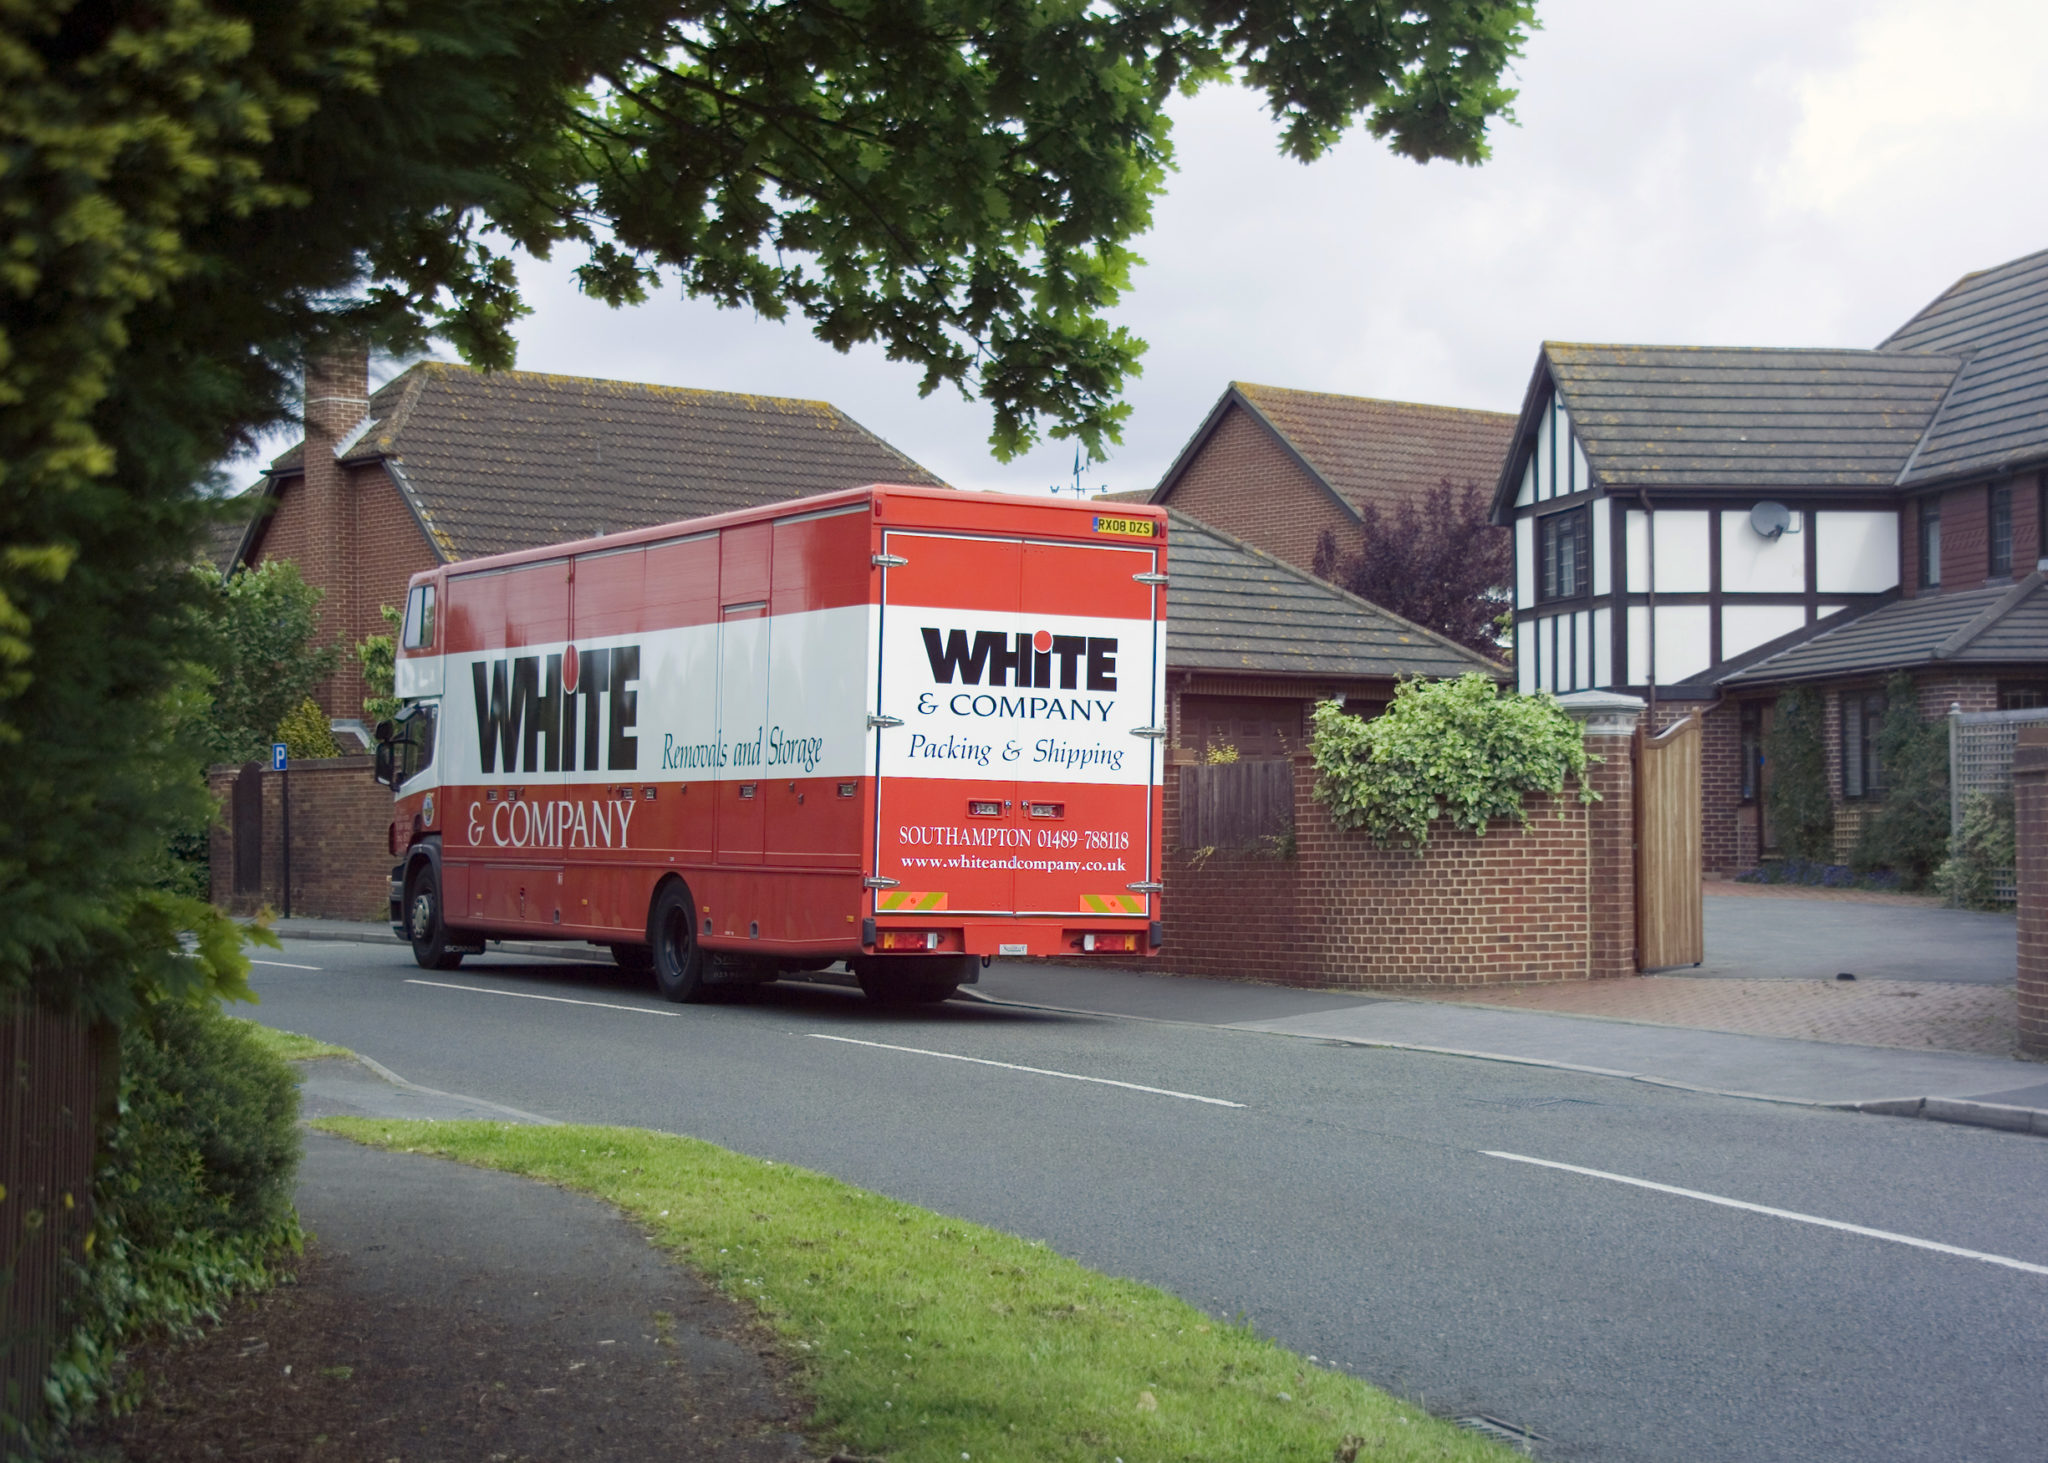 Removals Maidstone Removal Companies Maidstone White